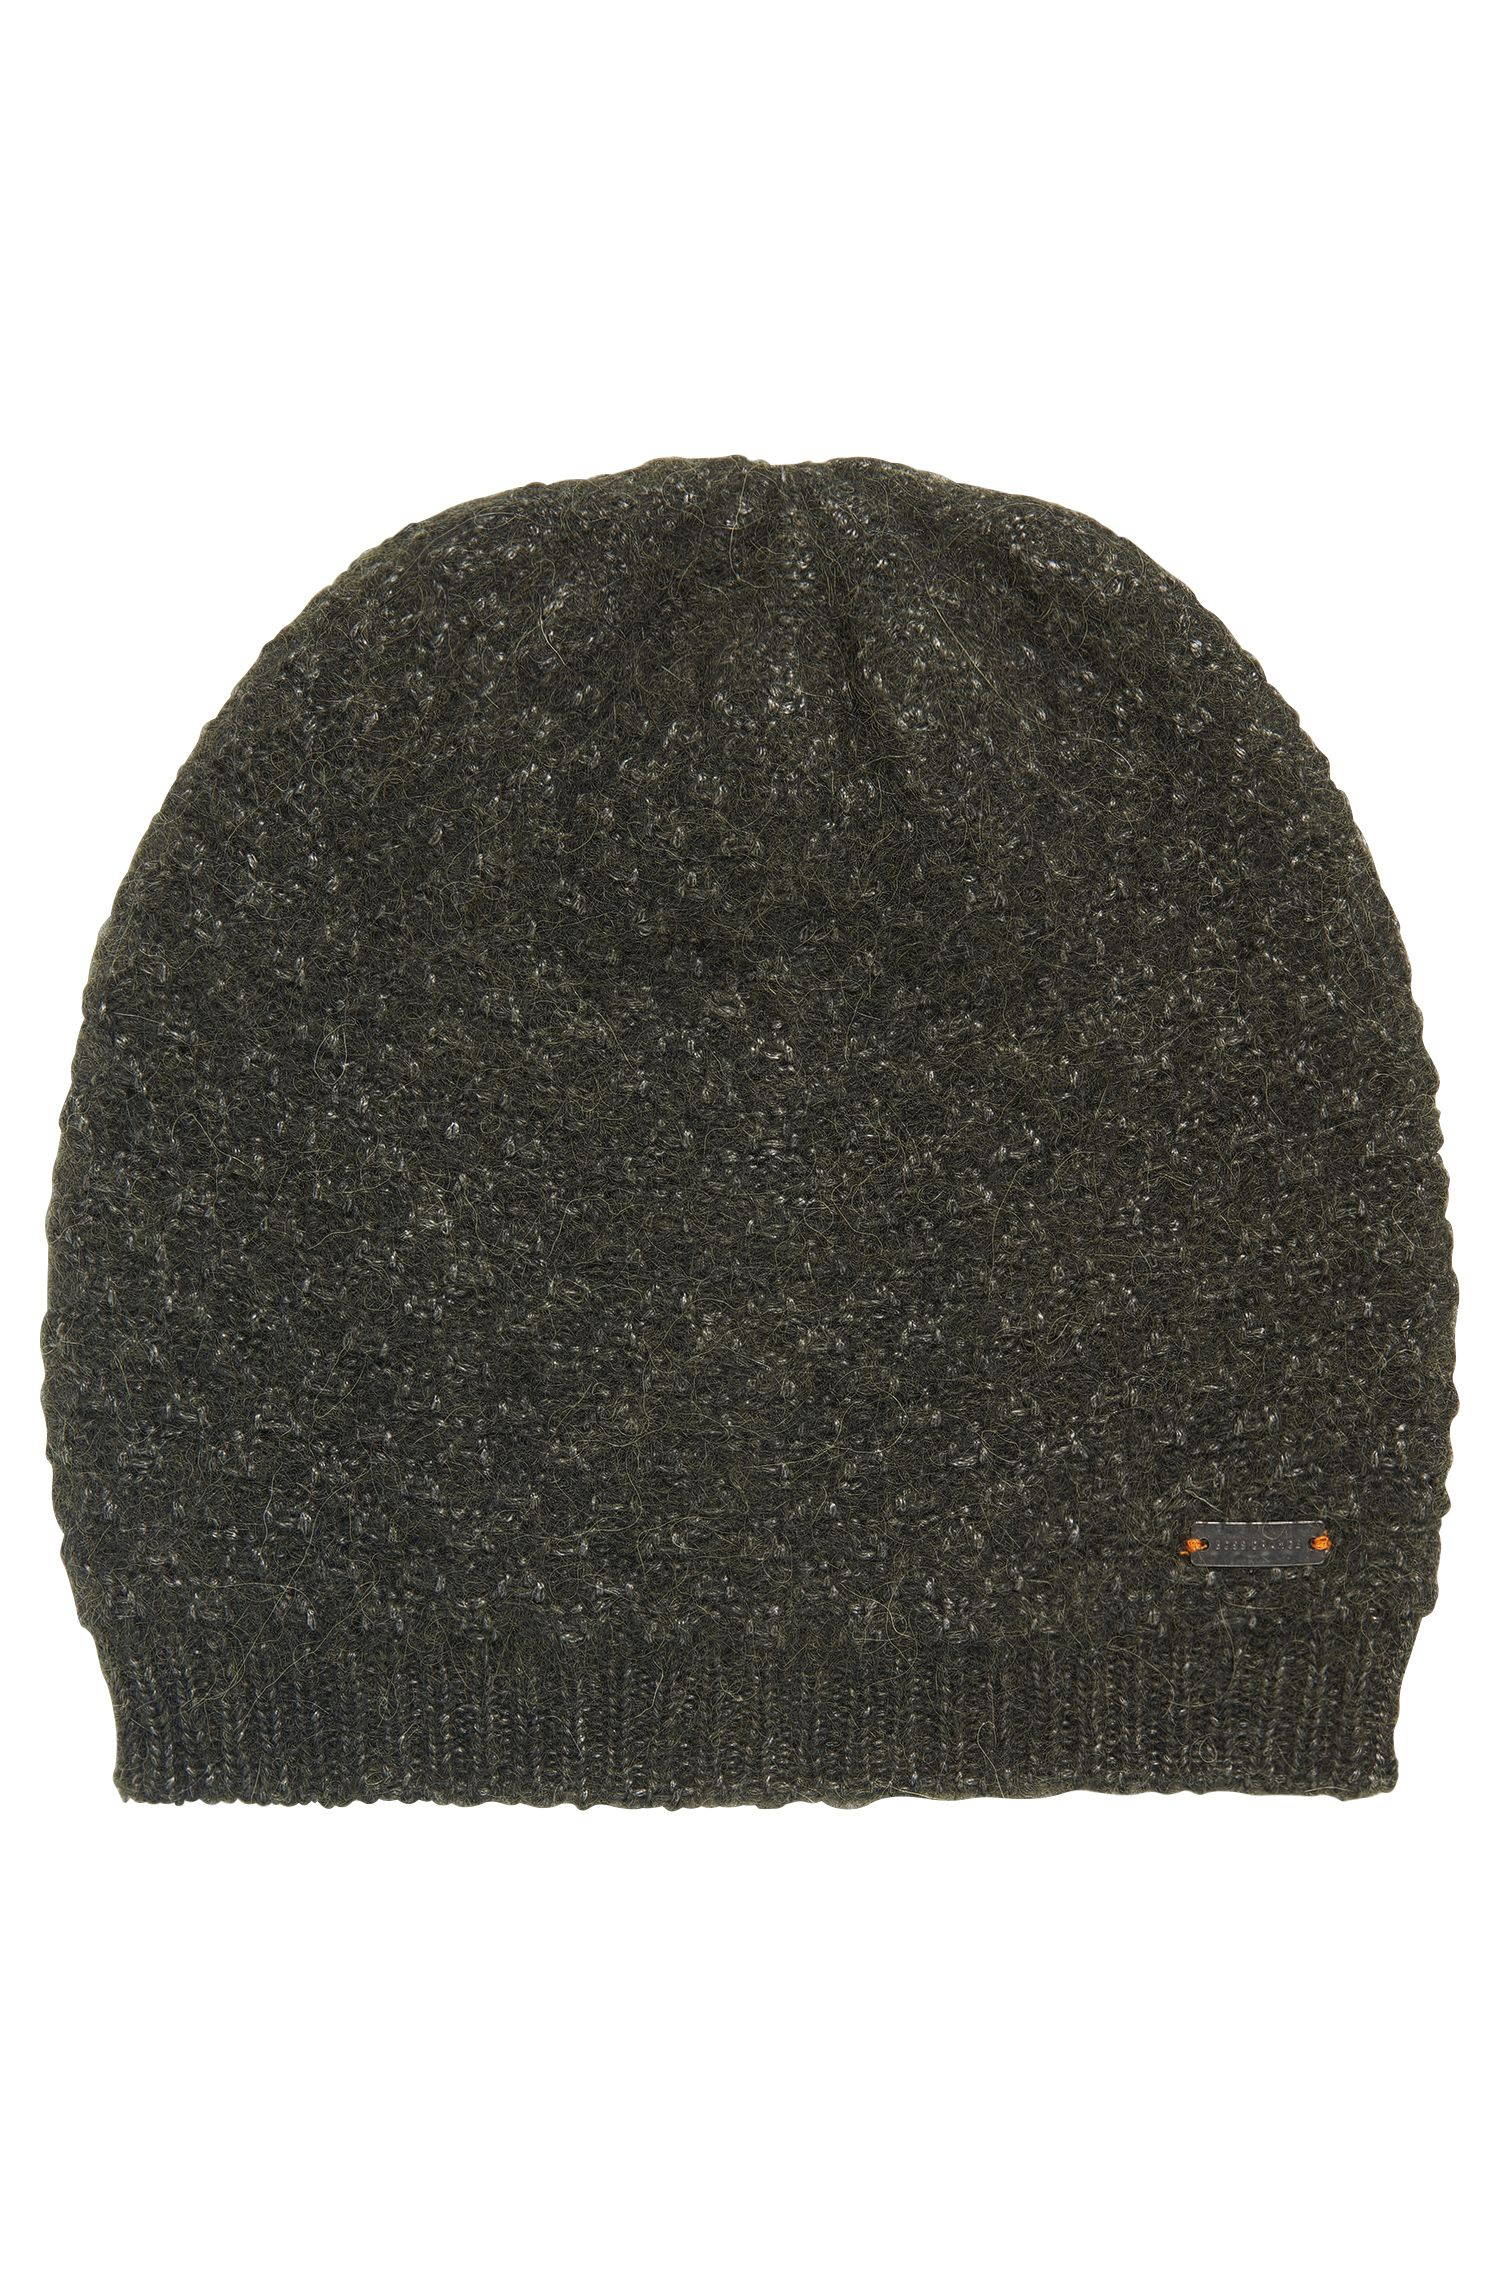 Structured knitted beanie